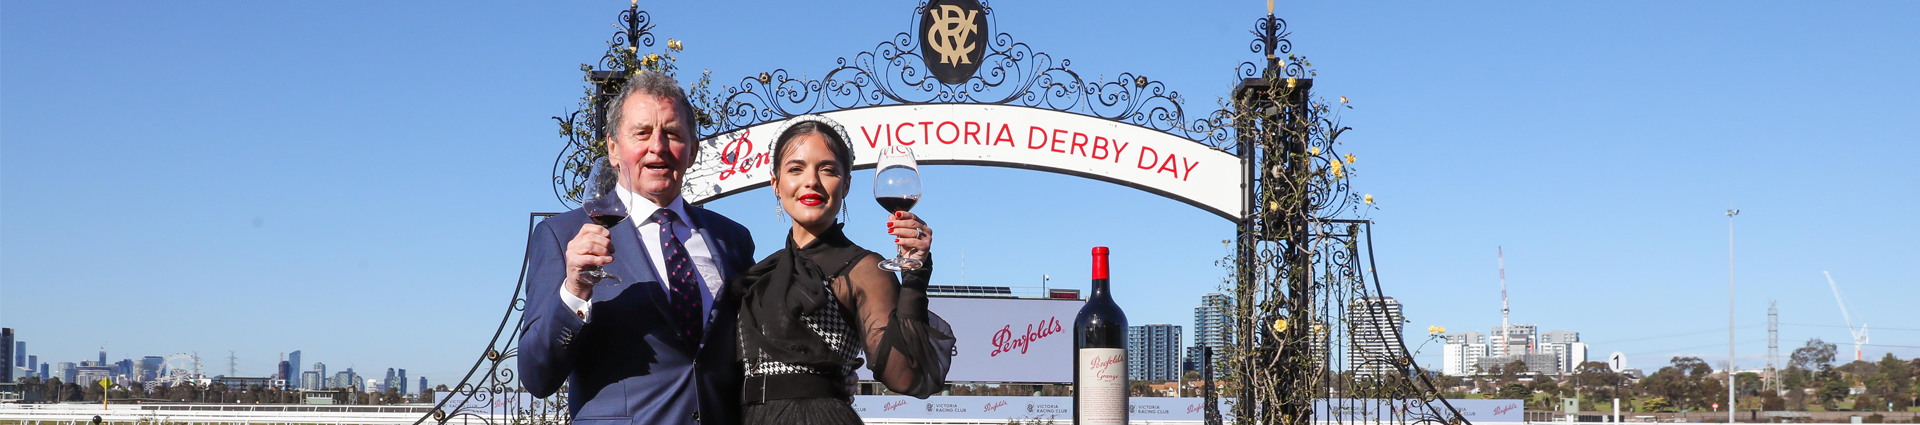 Olympia Valance toasts Penfolds Victoria Derby Day